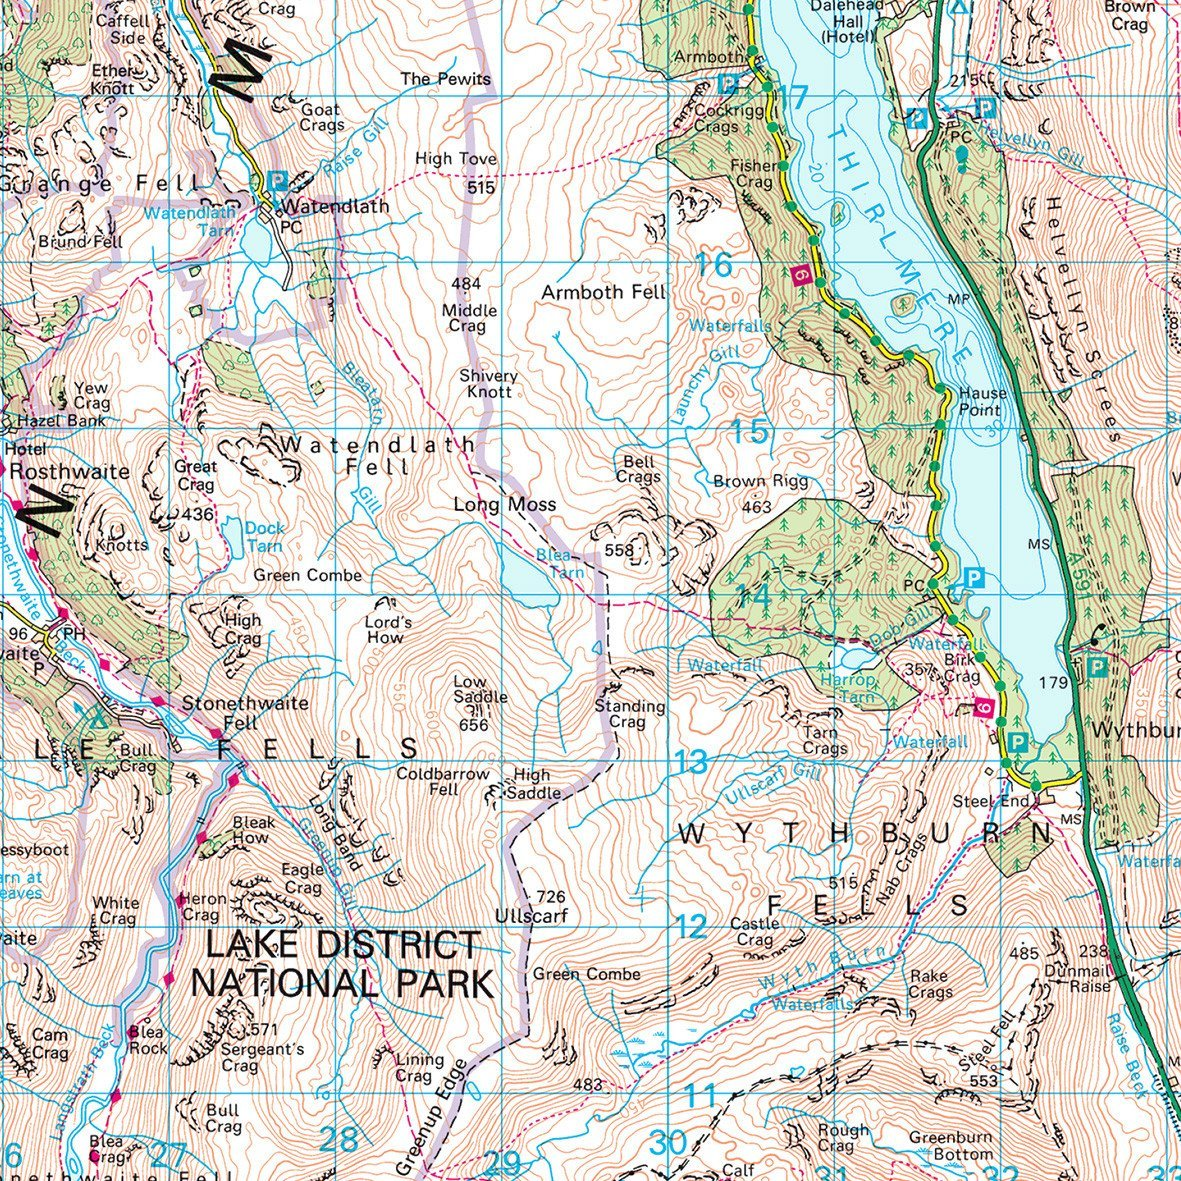 lake district map os Lake District Uk National Park Wall Map lake district map os